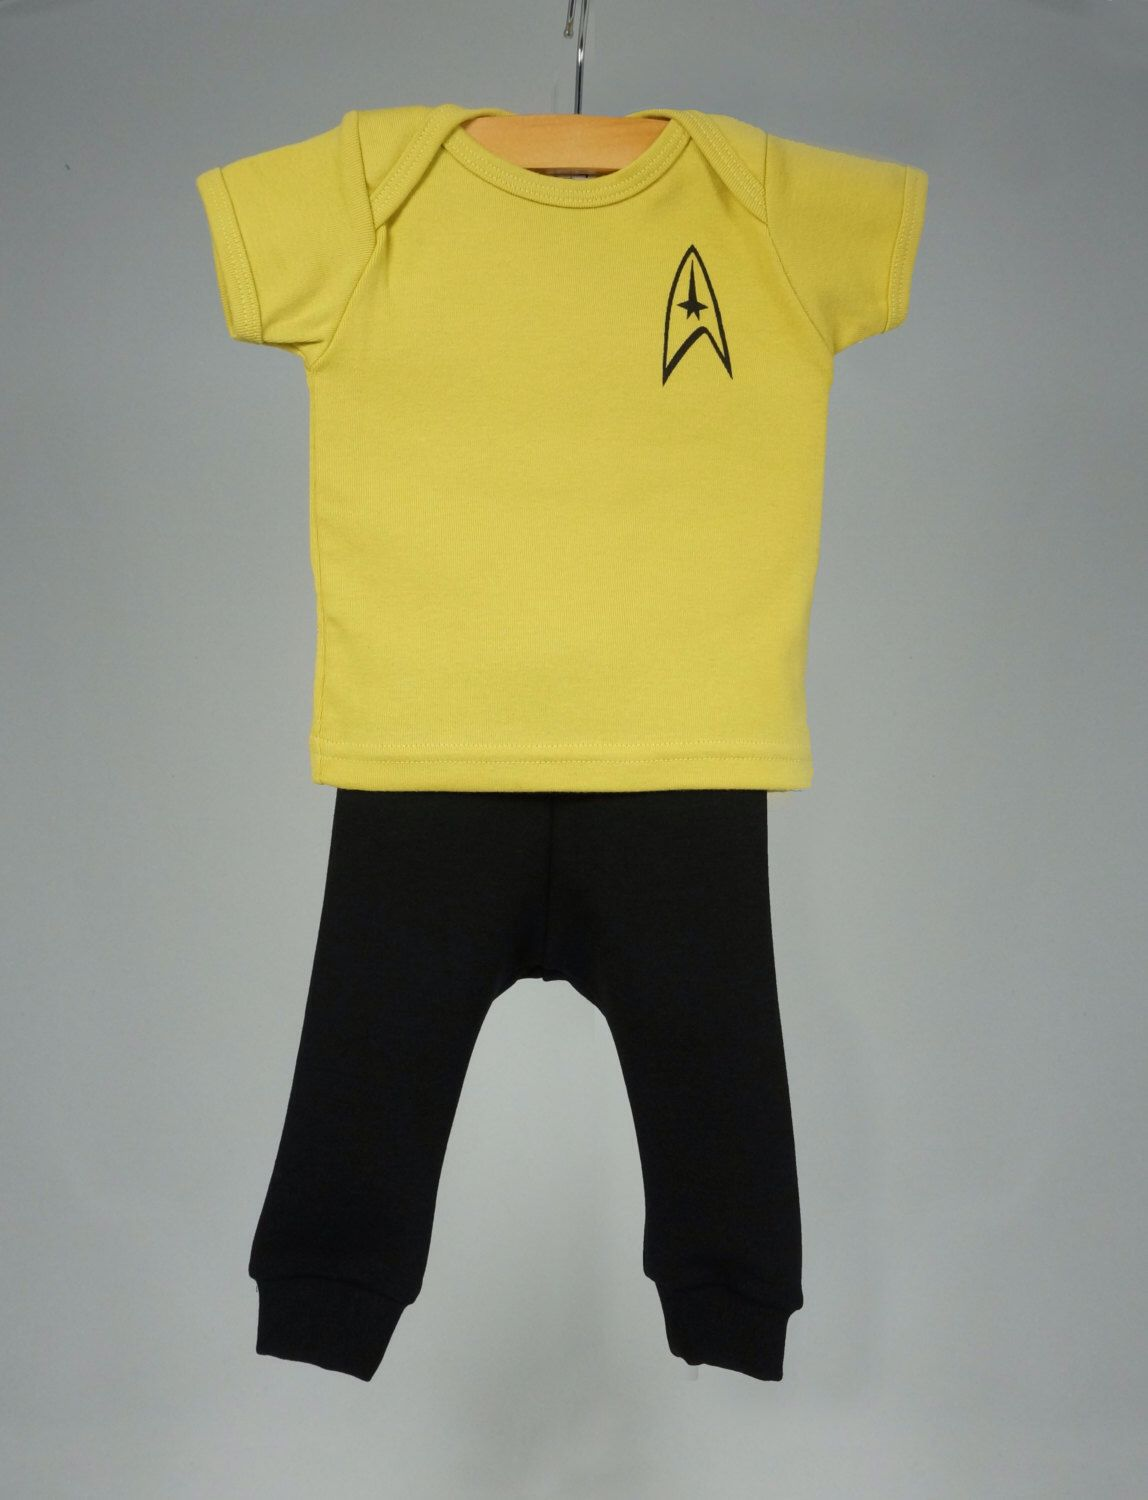 Tiny captain uniform baby Star Trek outfit nerdy baby gifts baby halloween costume Star Trek clothing for babies by StrangeGalaxy on Etsy ... & Tiny captain uniform baby Star Trek outfit nerdy baby gifts baby ...